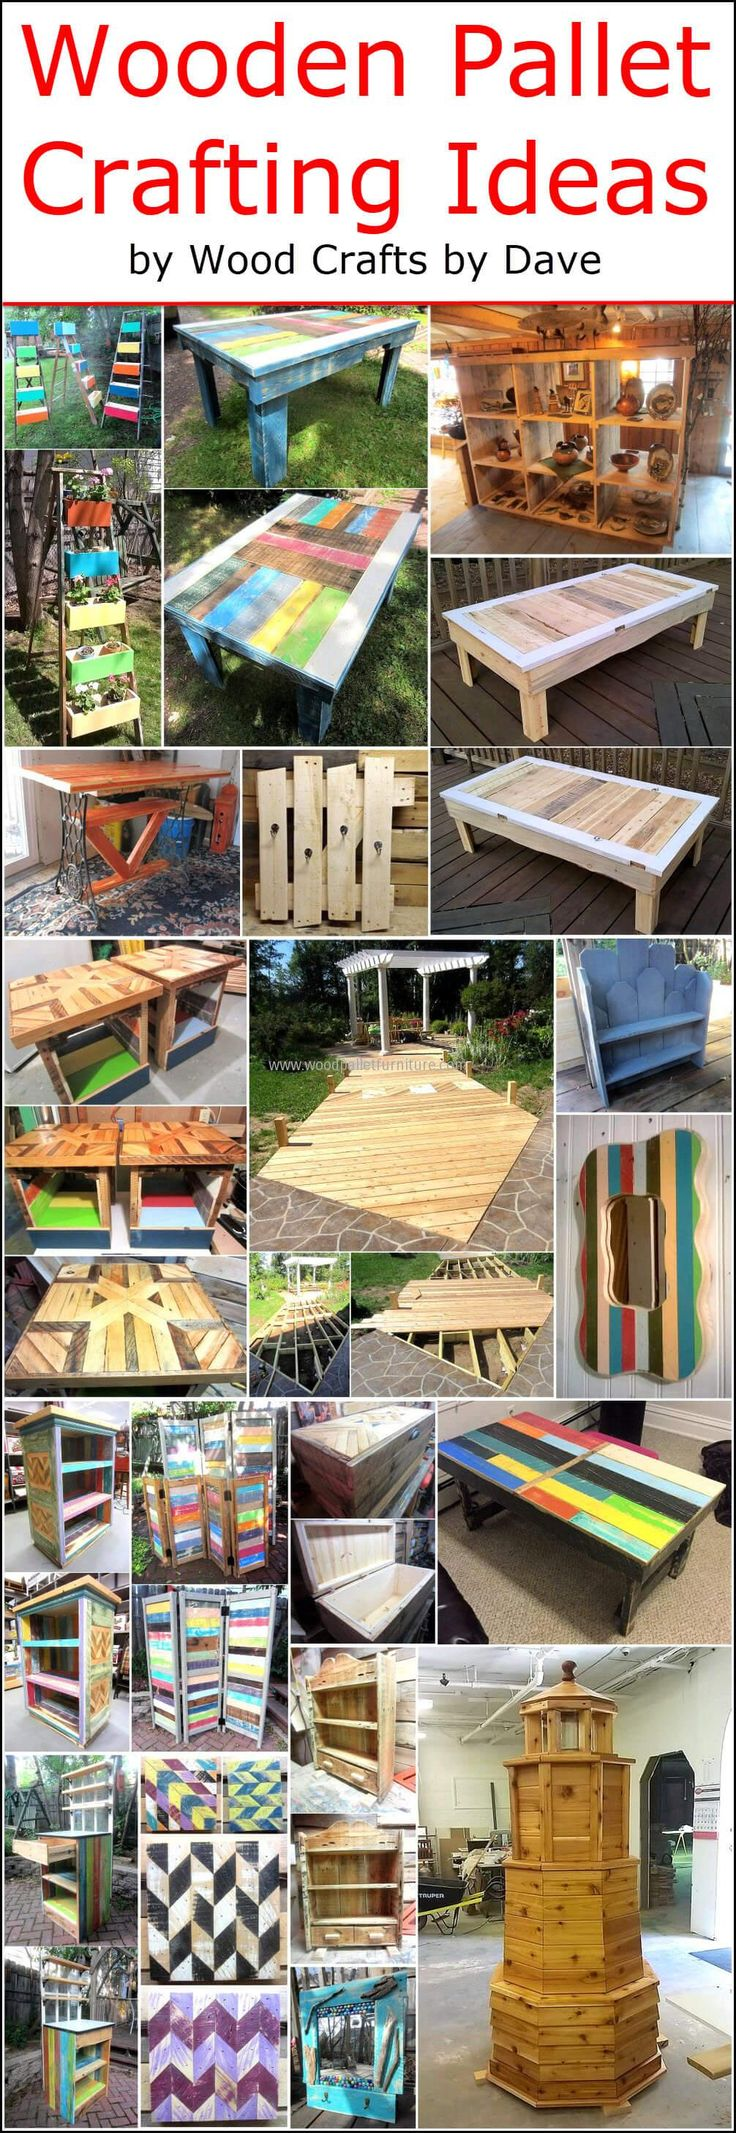 Wooden transport pallets have become increasingly popular for diy - Wood Crafting Has Become Very Popular These Days Around The World Because Of Its Inexpensive And